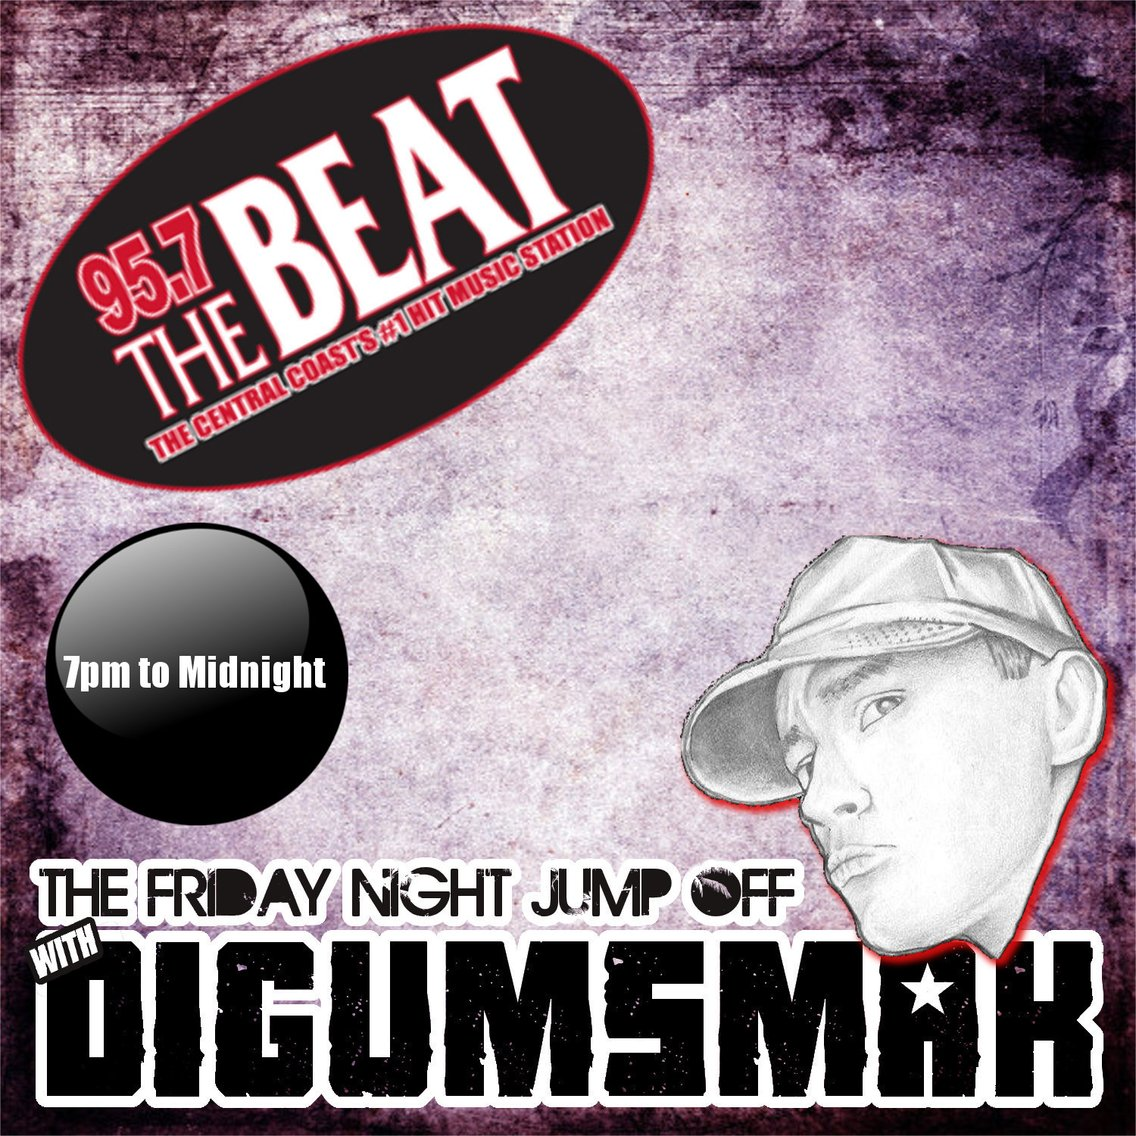 Friday Night Jump Off on 95.7 The Beat - Cover Image